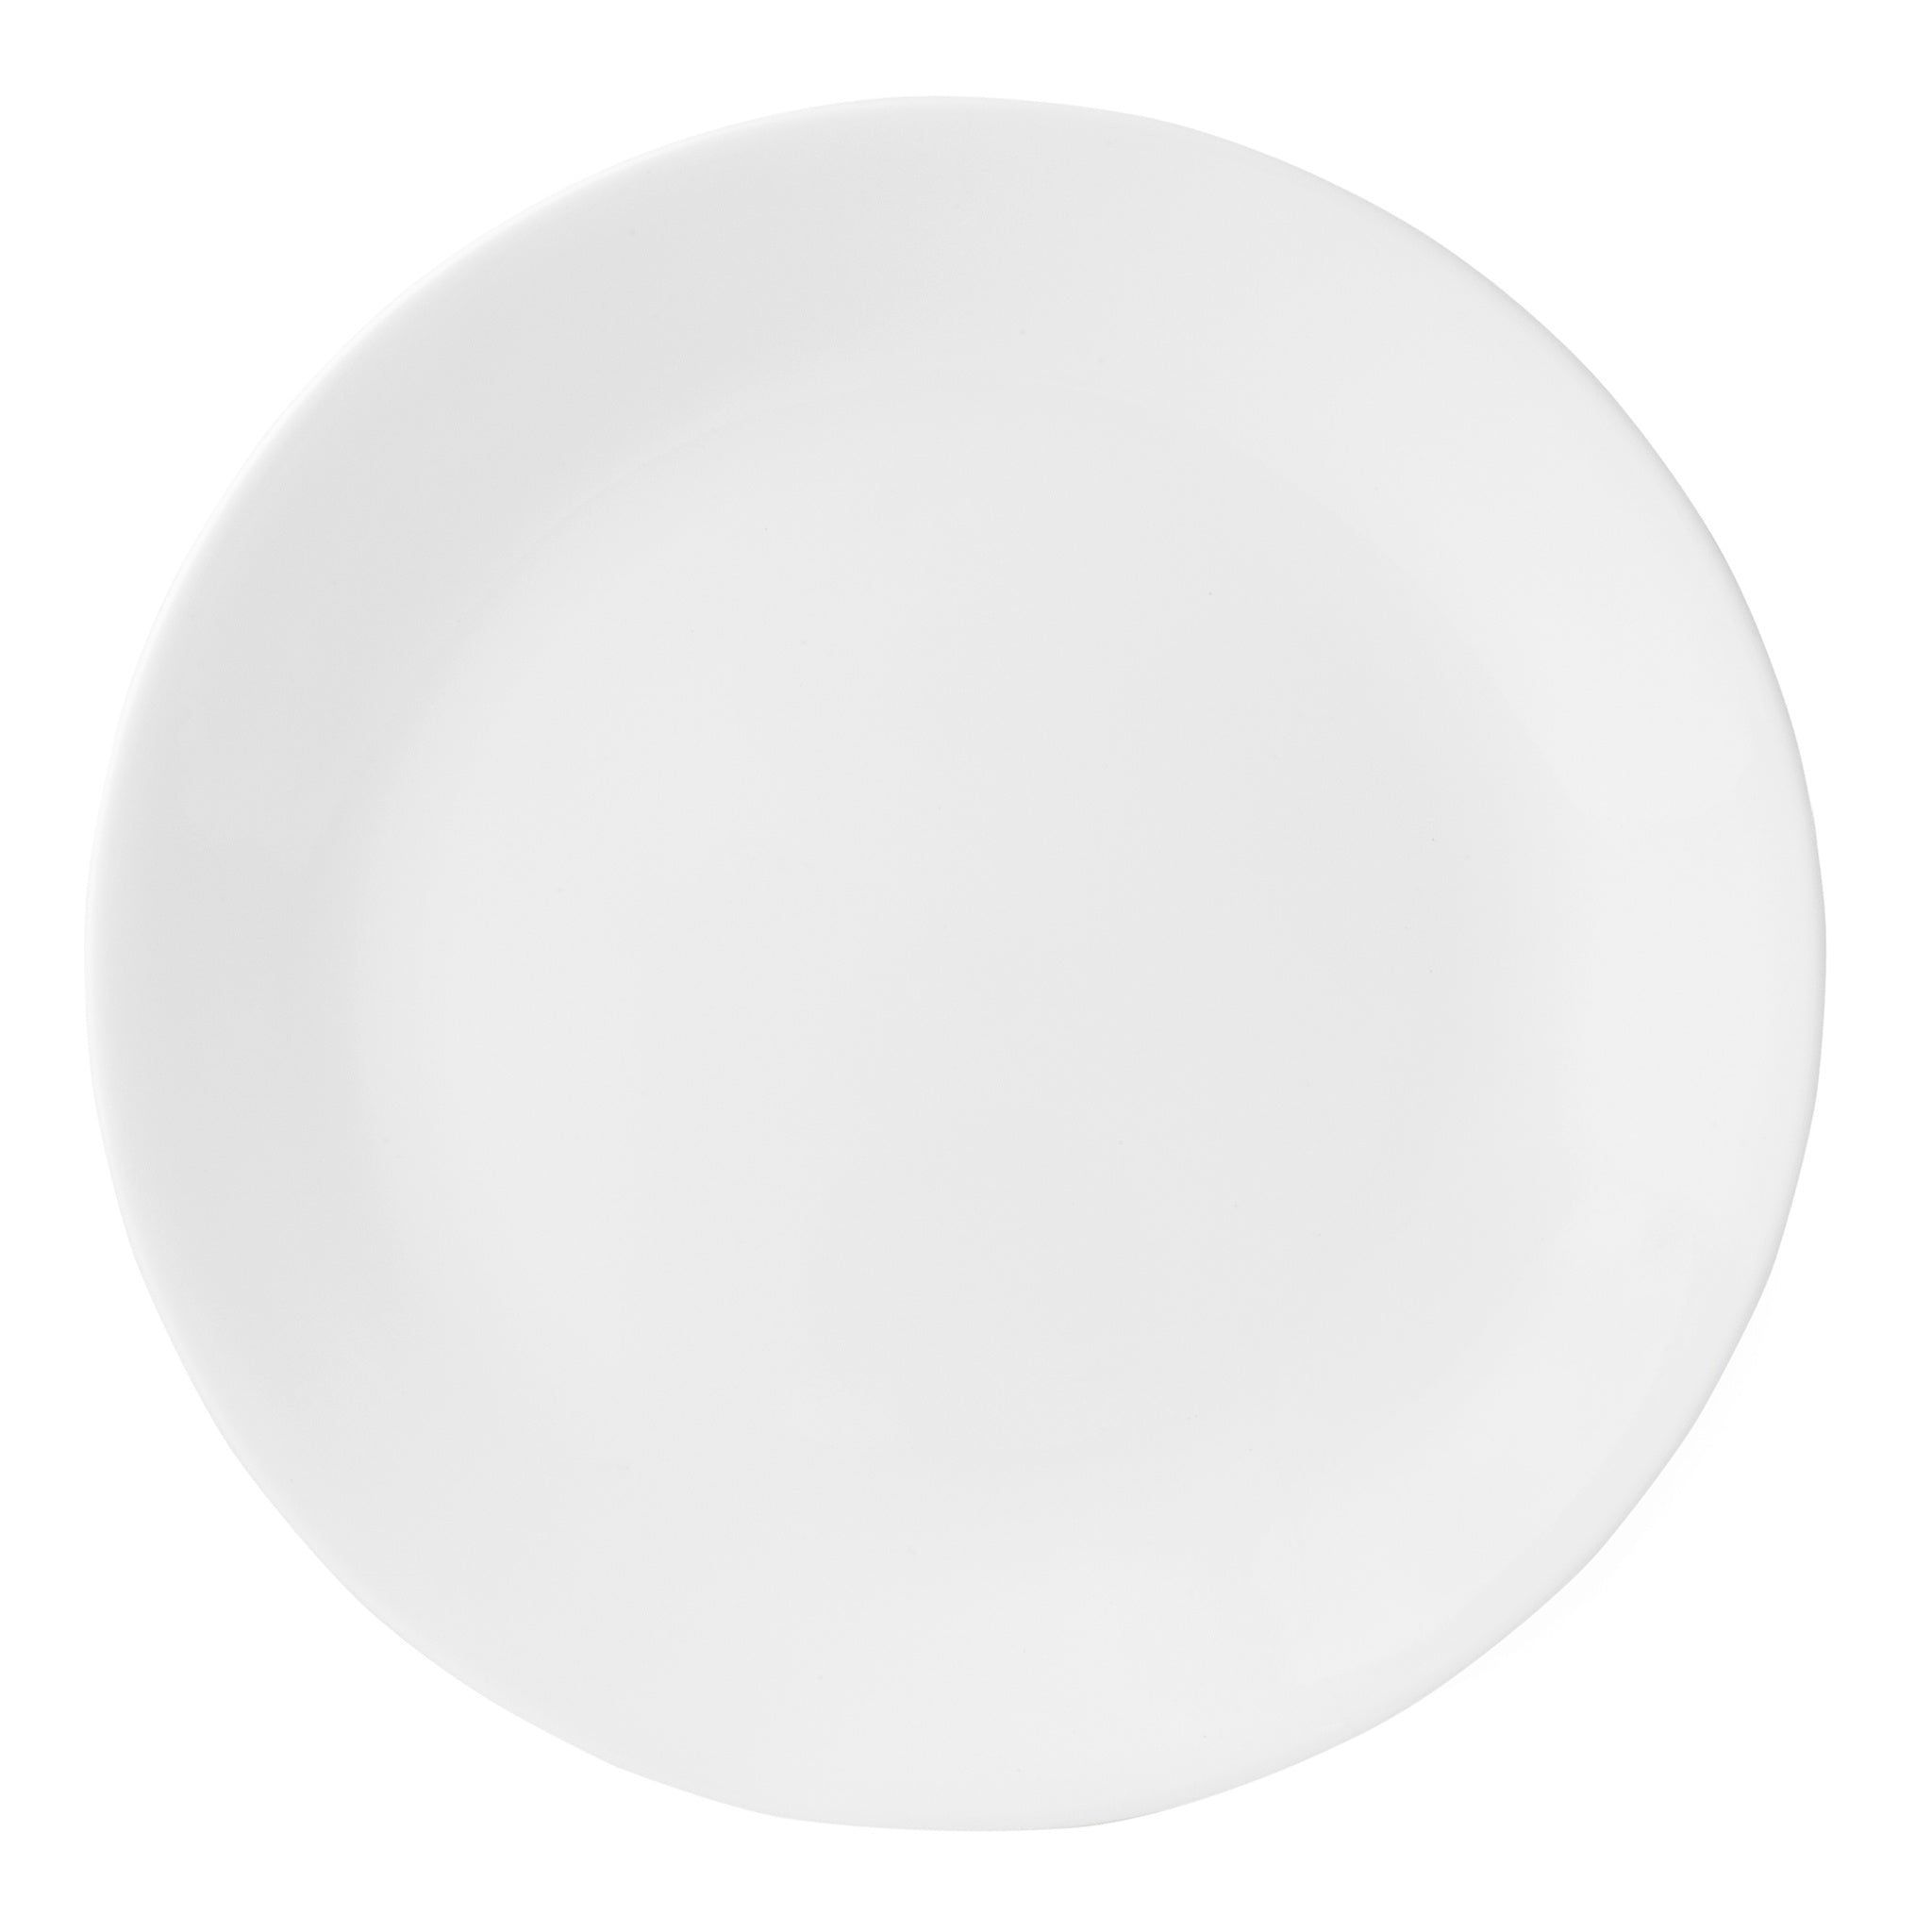 Corelle Classic Winter Frost White 26cm Dinner Plate-6003893